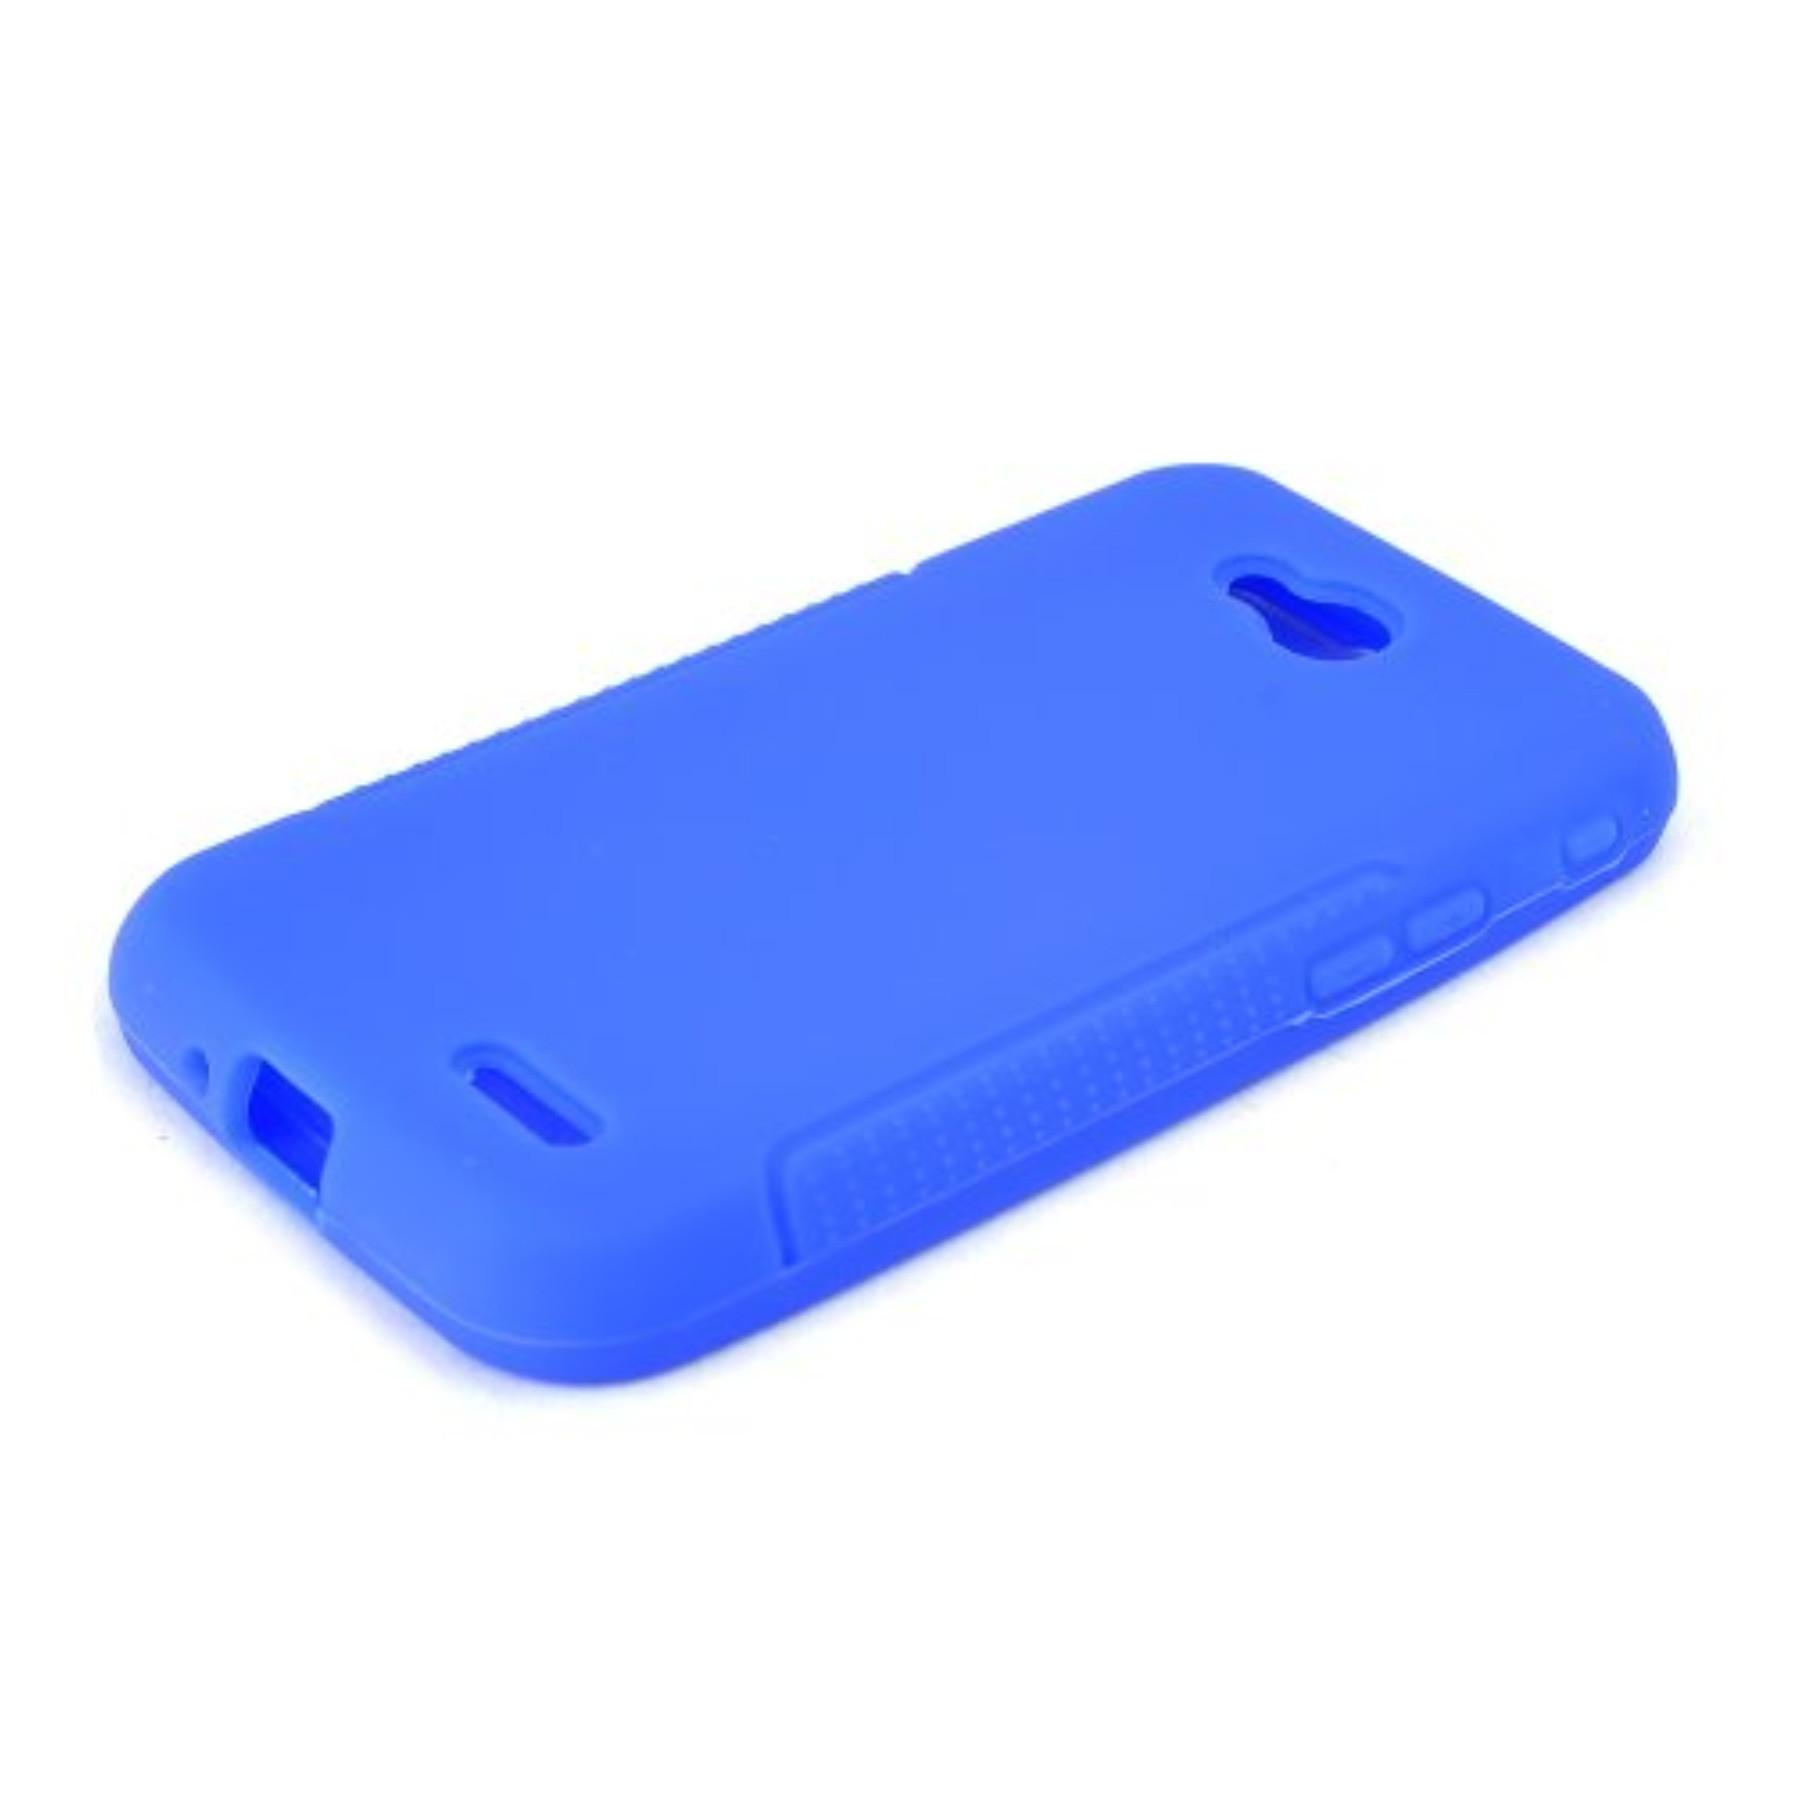 Karendeals Blue L90 Silicone Case Cover Anti Slip